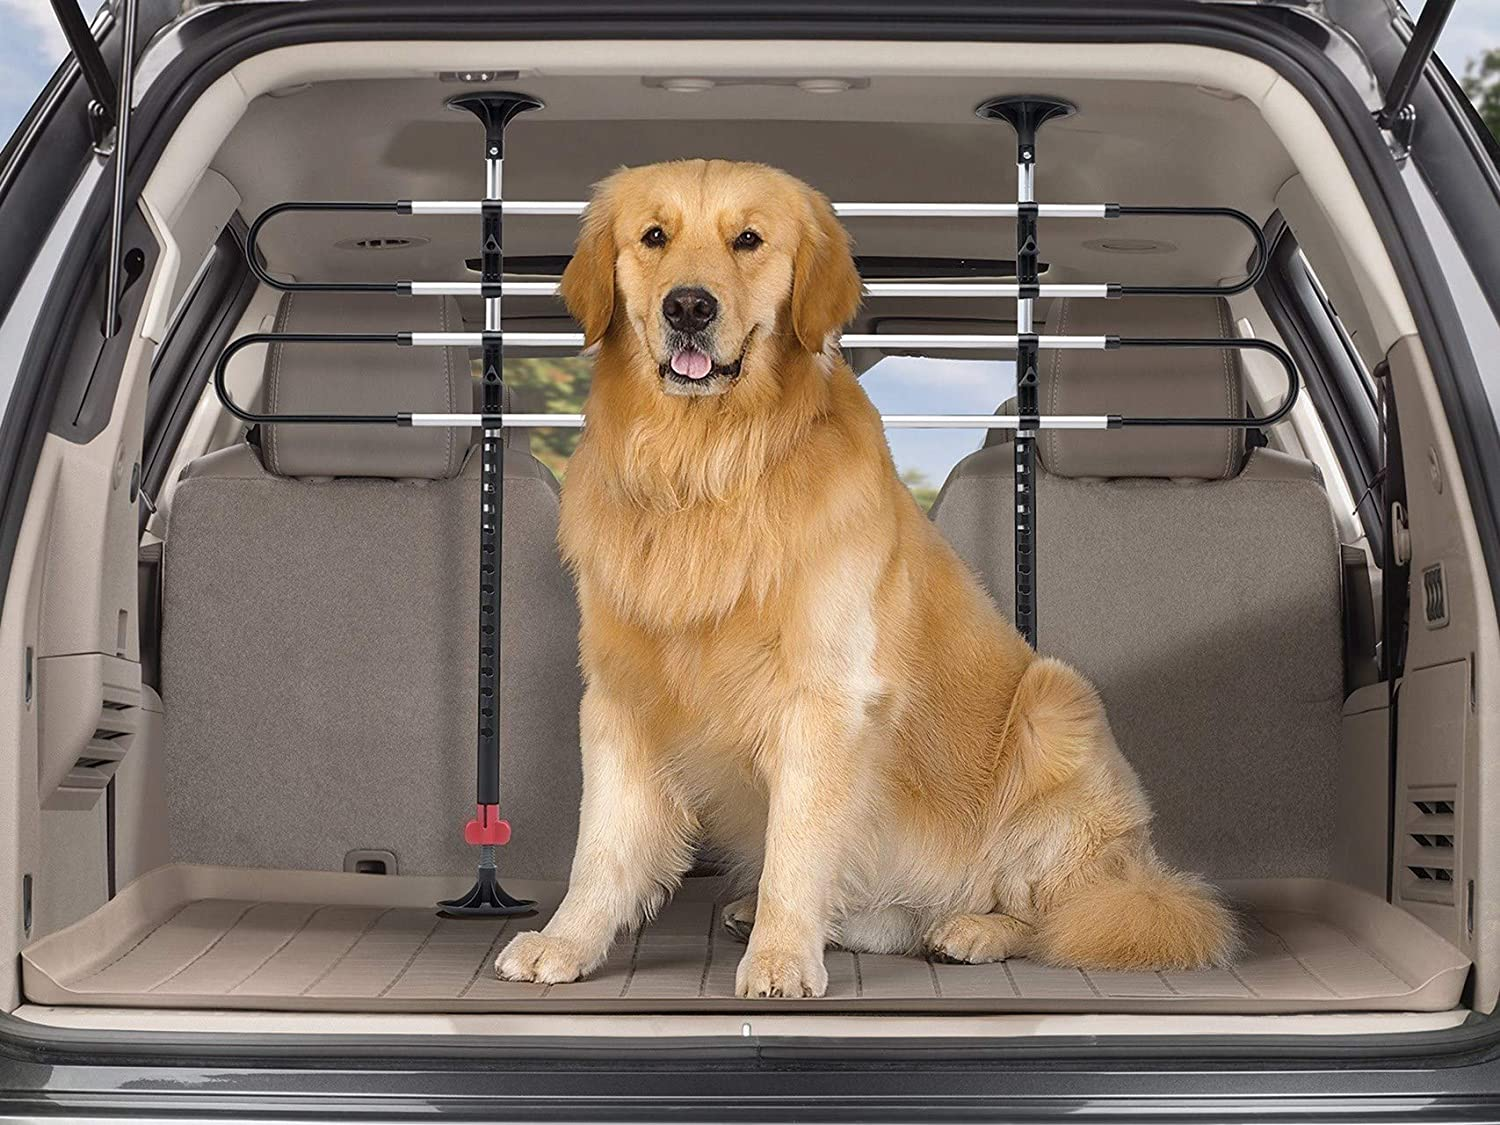 Keeps Pets Secure in Vehicle Behind Your 2nd or 3rd Row Seats WeatherTech Pet Barrier